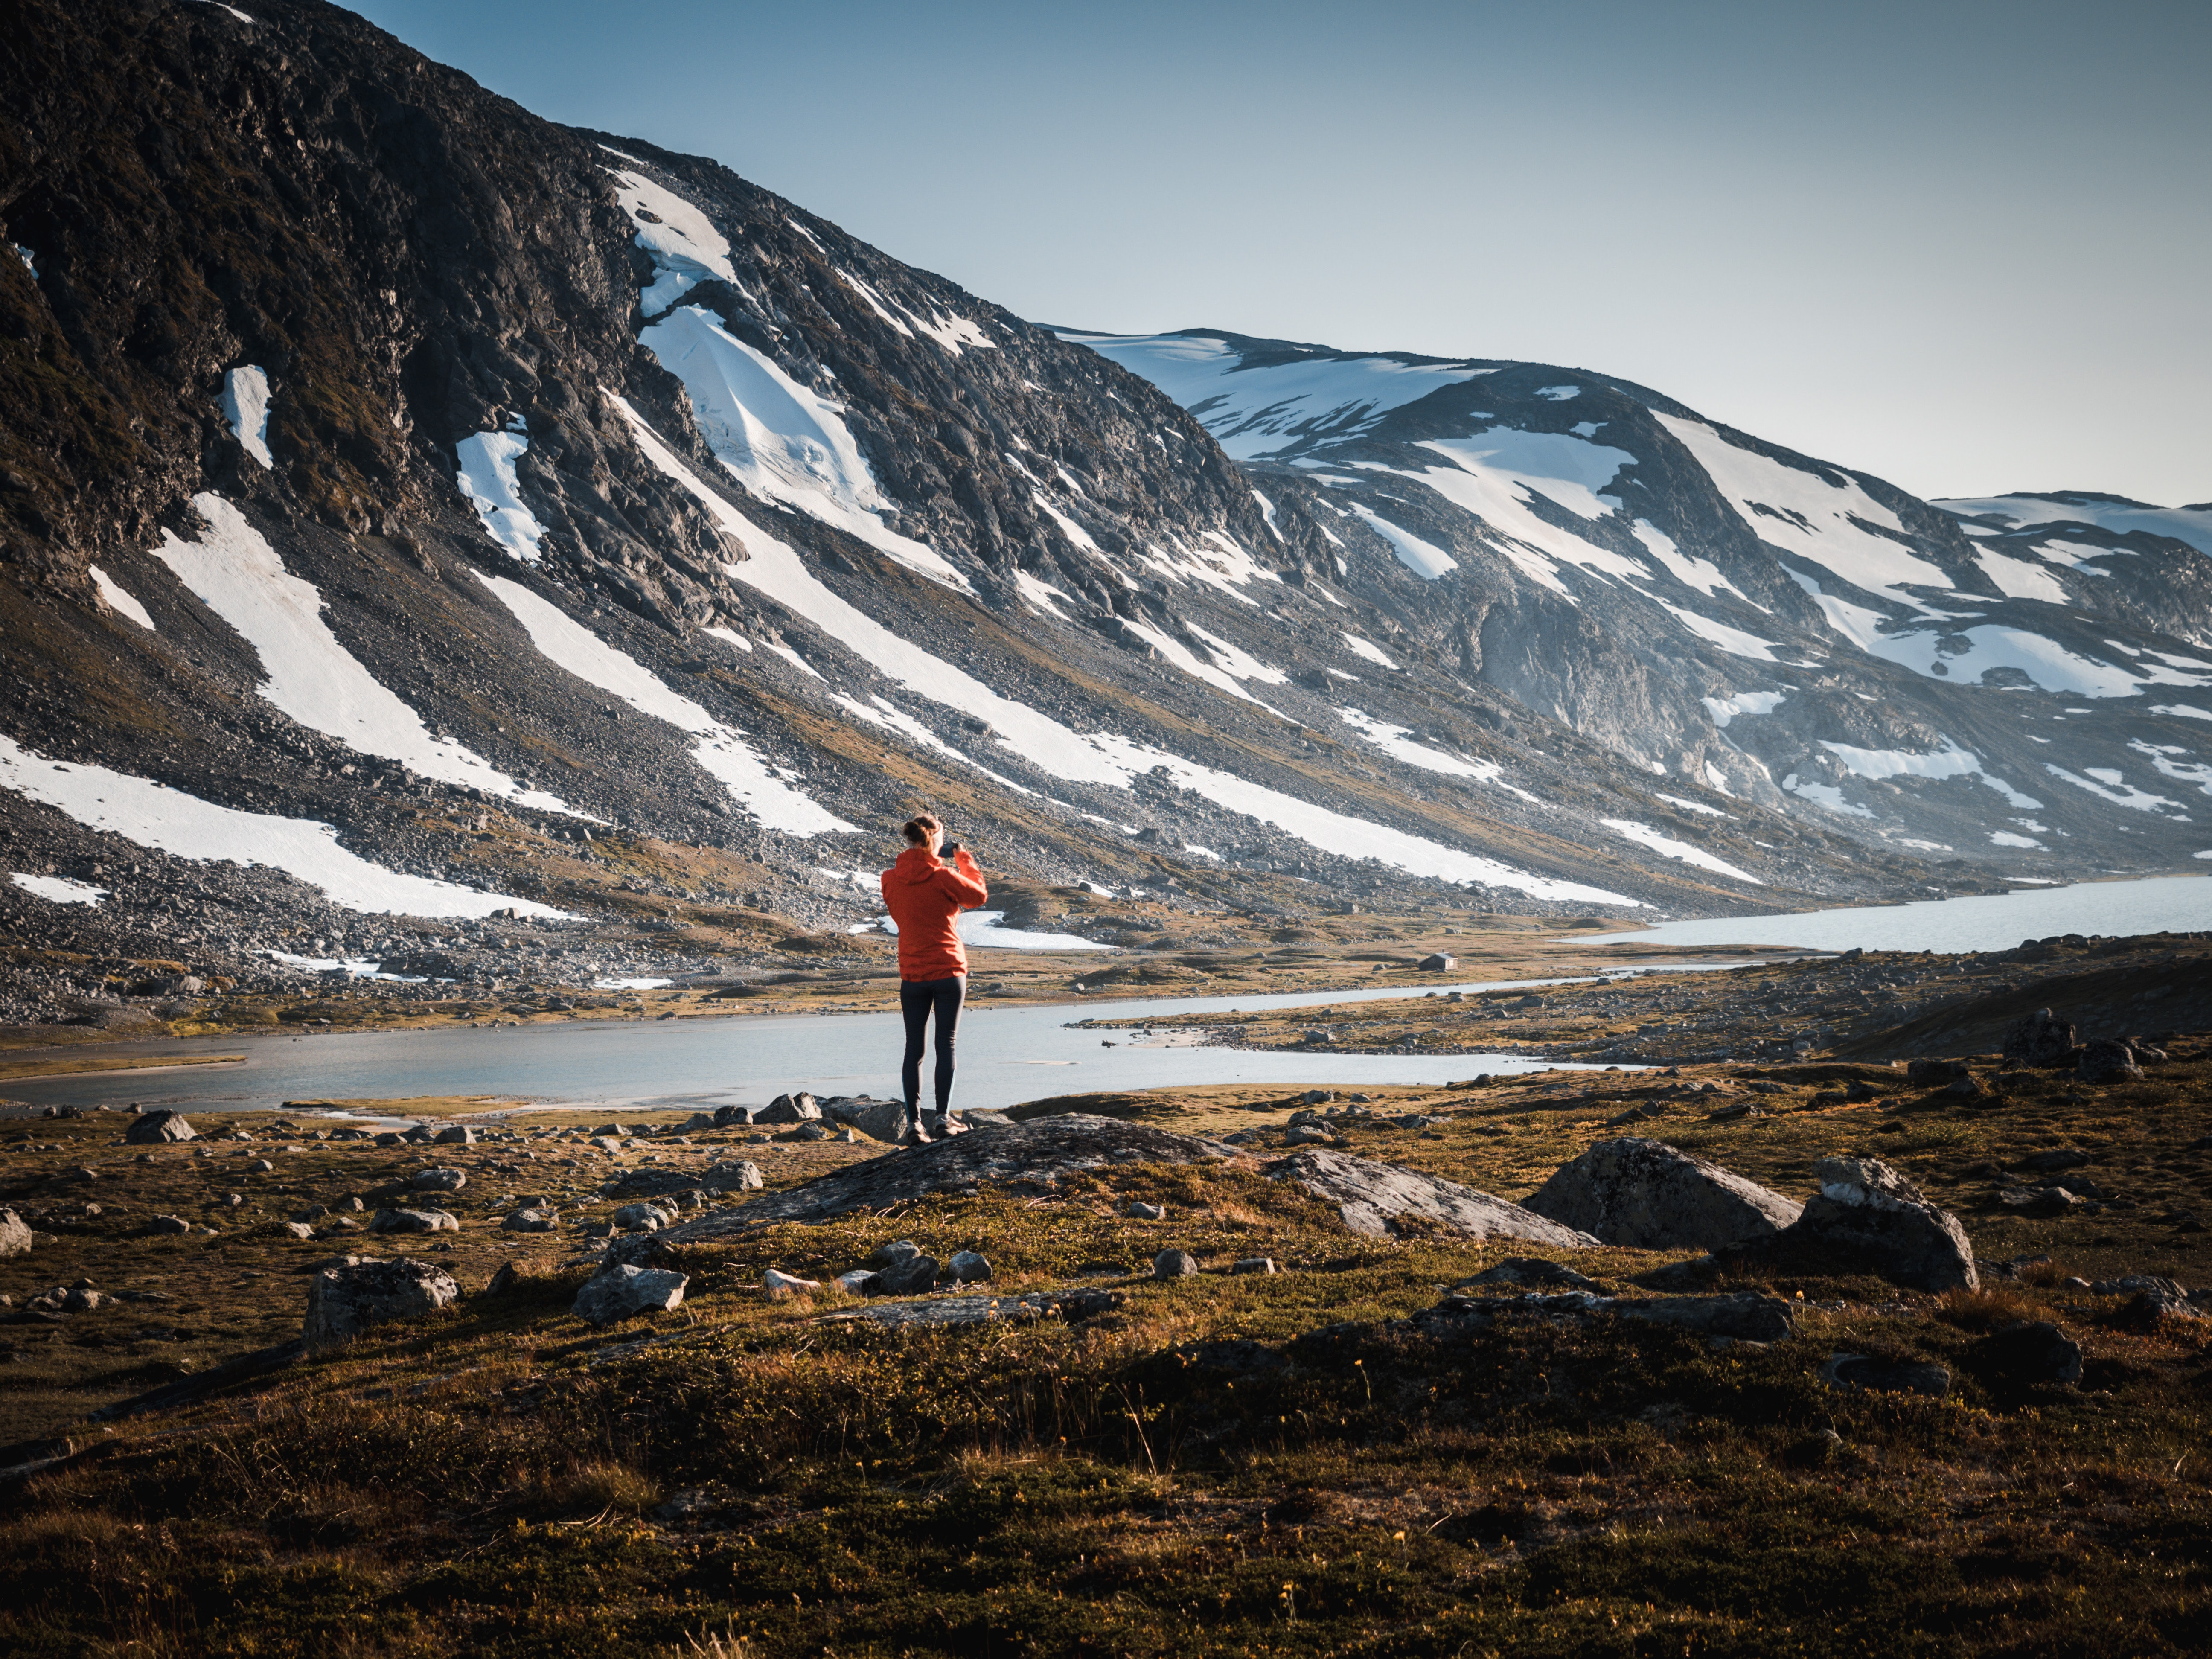 person standing on rock near body of water and mountain